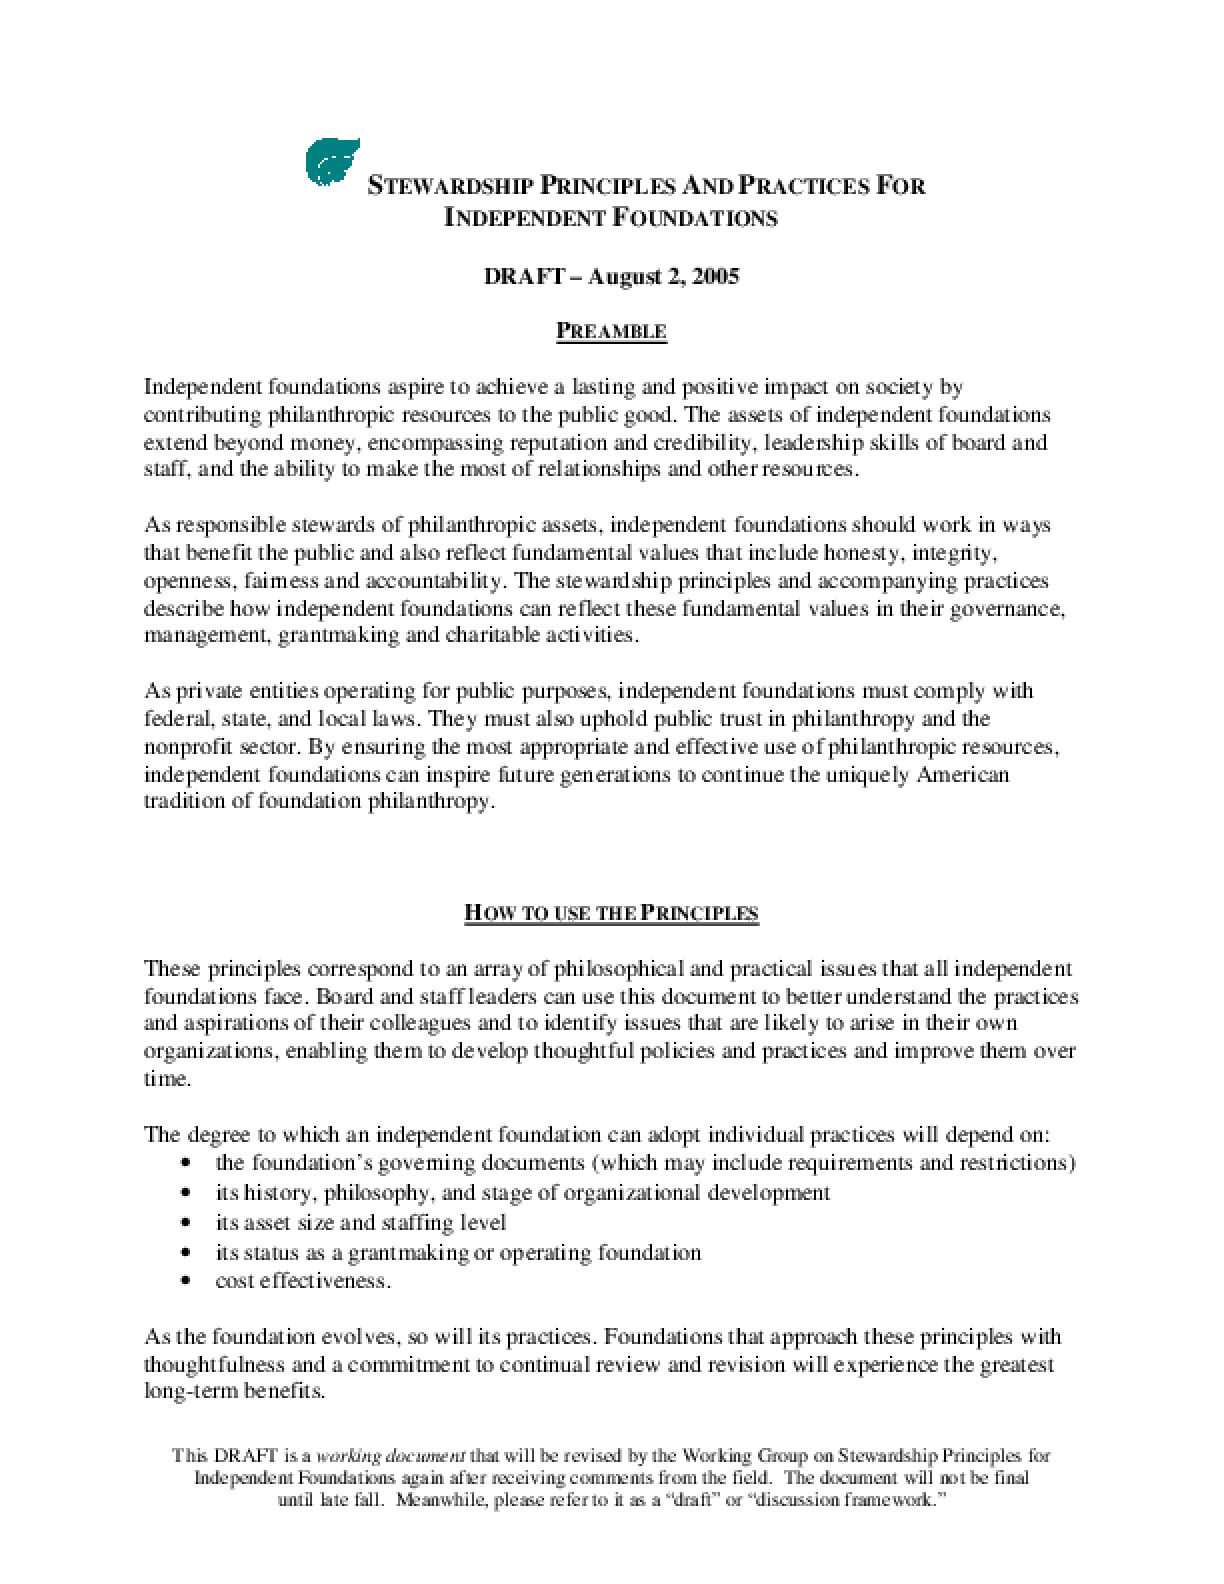 Council On Foundations. Stewardship Principles For Independent Foundations: Draft: August 2, 2005